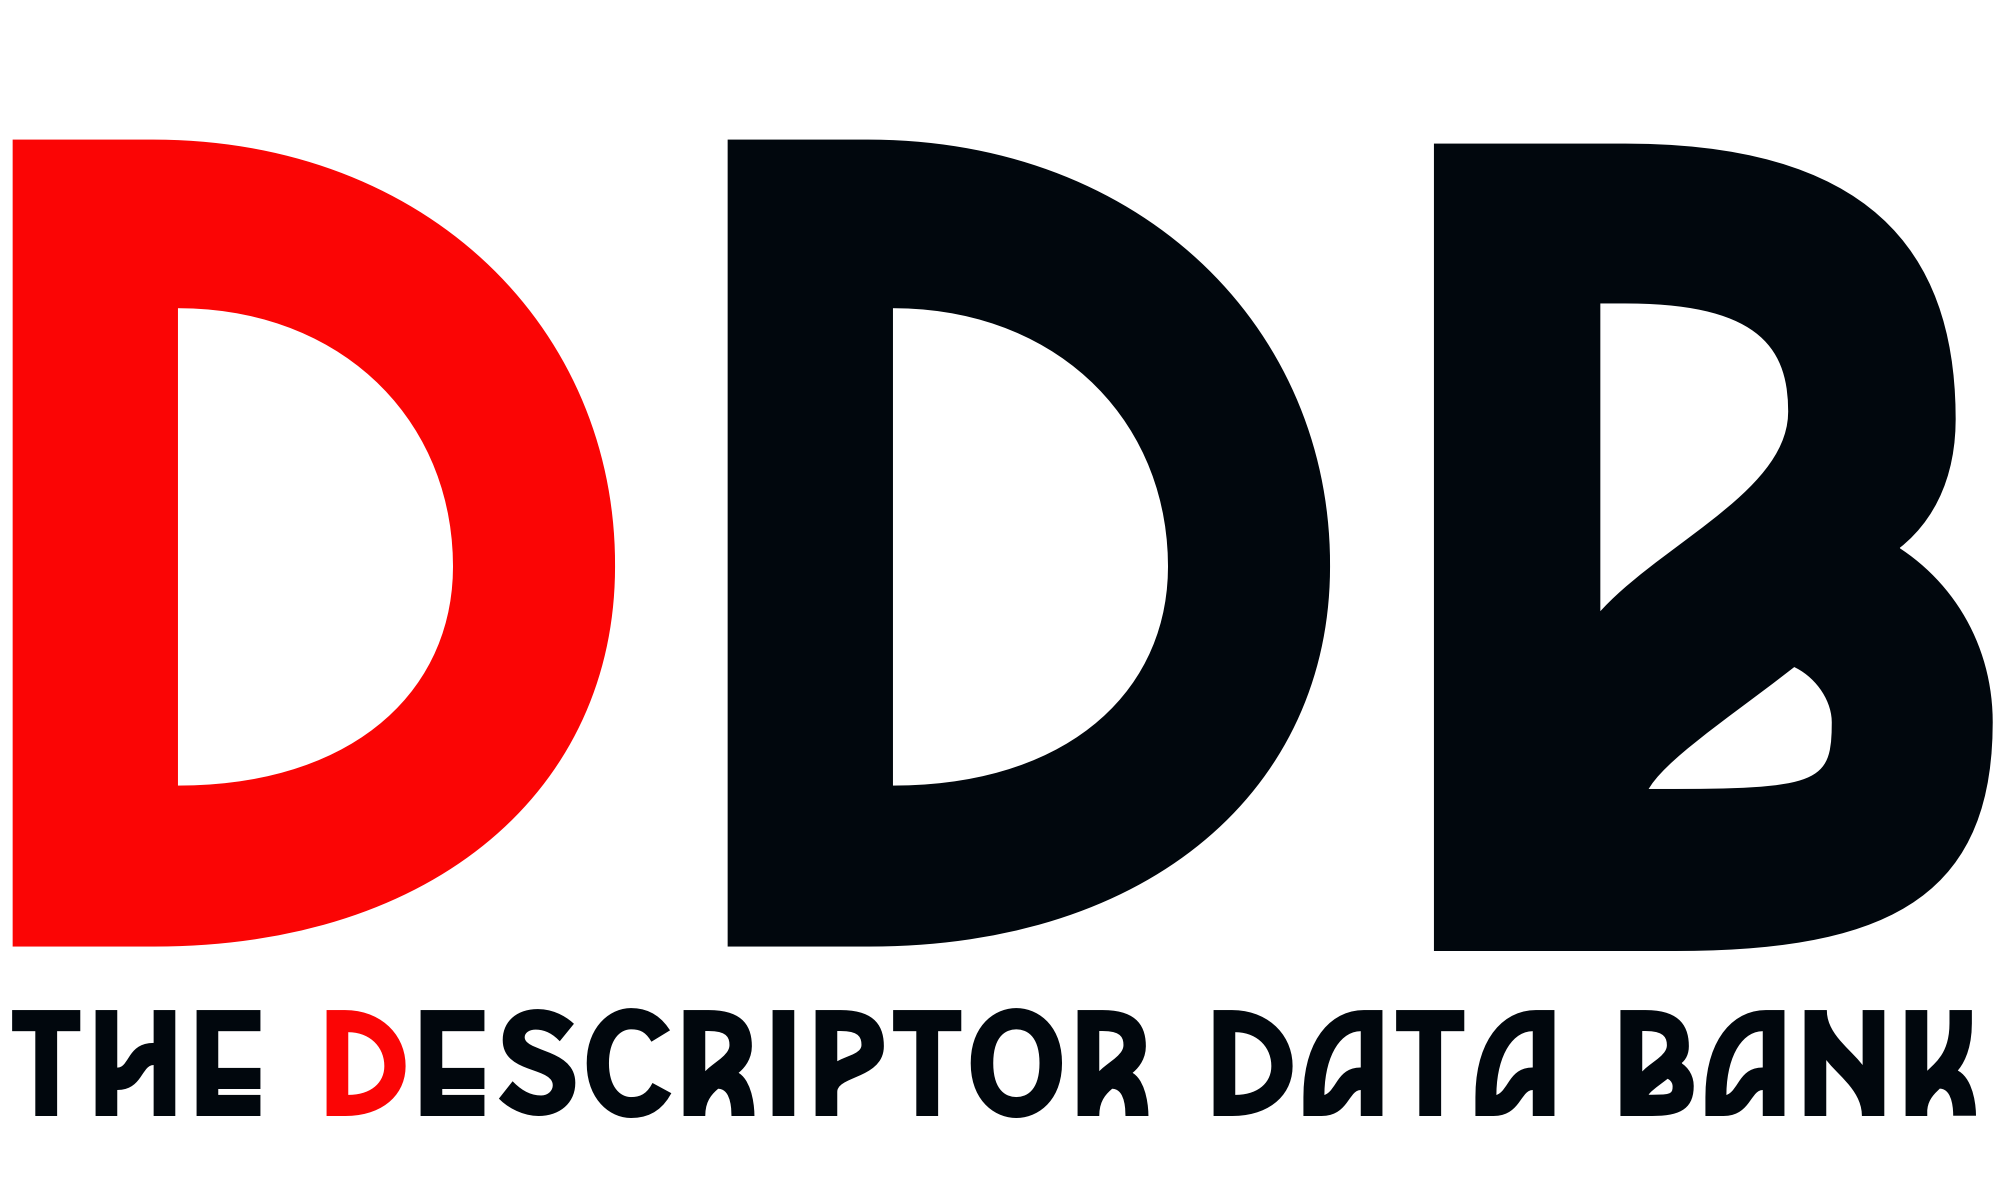 The Descriptor Data Bank